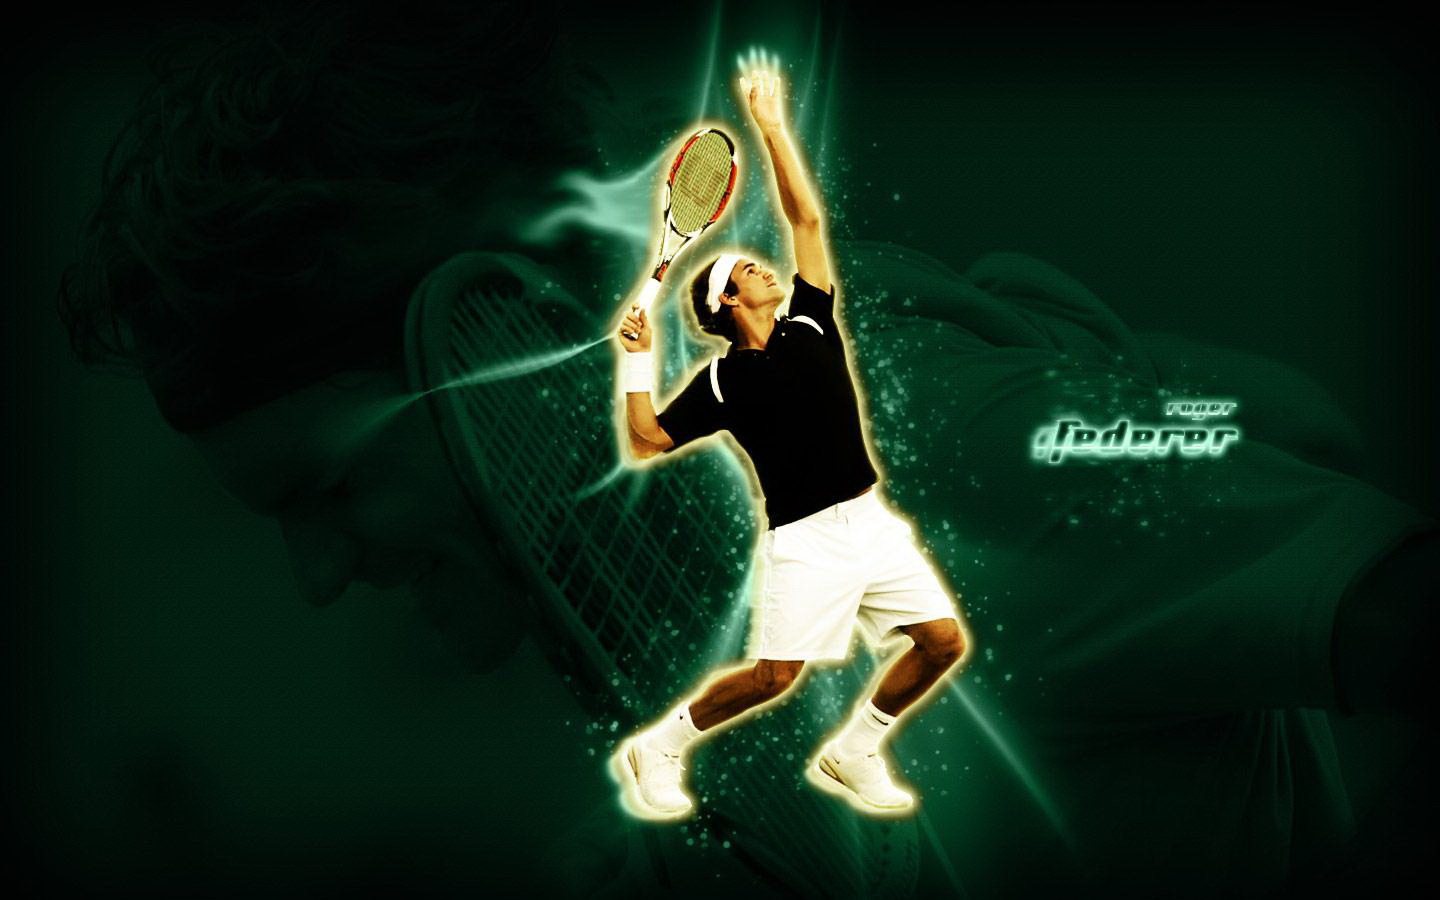 Roger Federer HD Pictures & Wallpapers